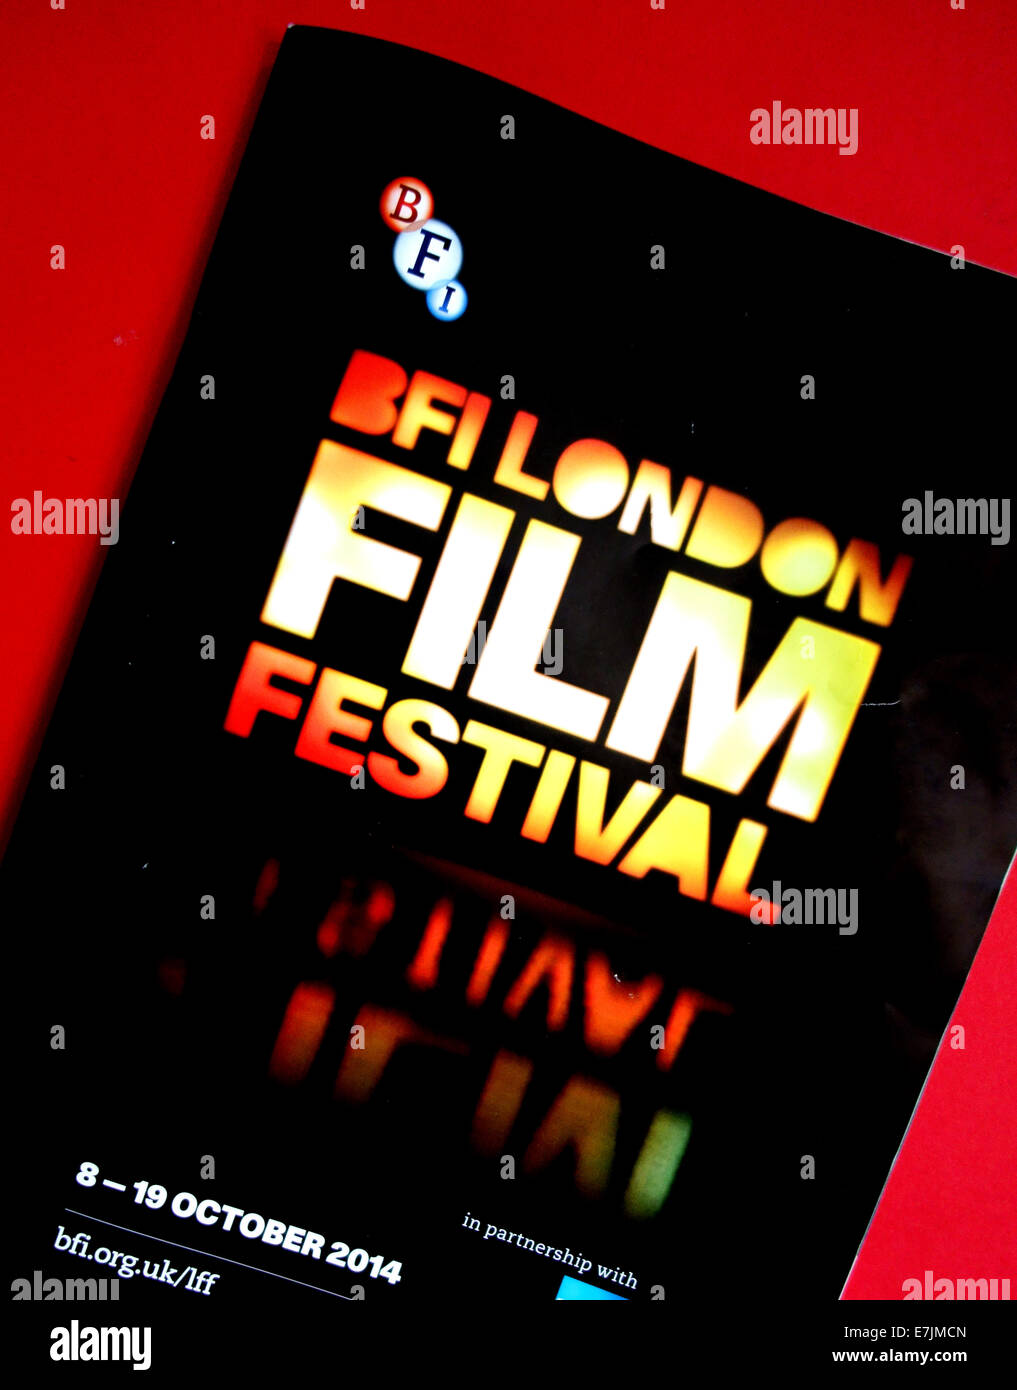 2014 BFI London Film Festival official programme, London - Stock Image